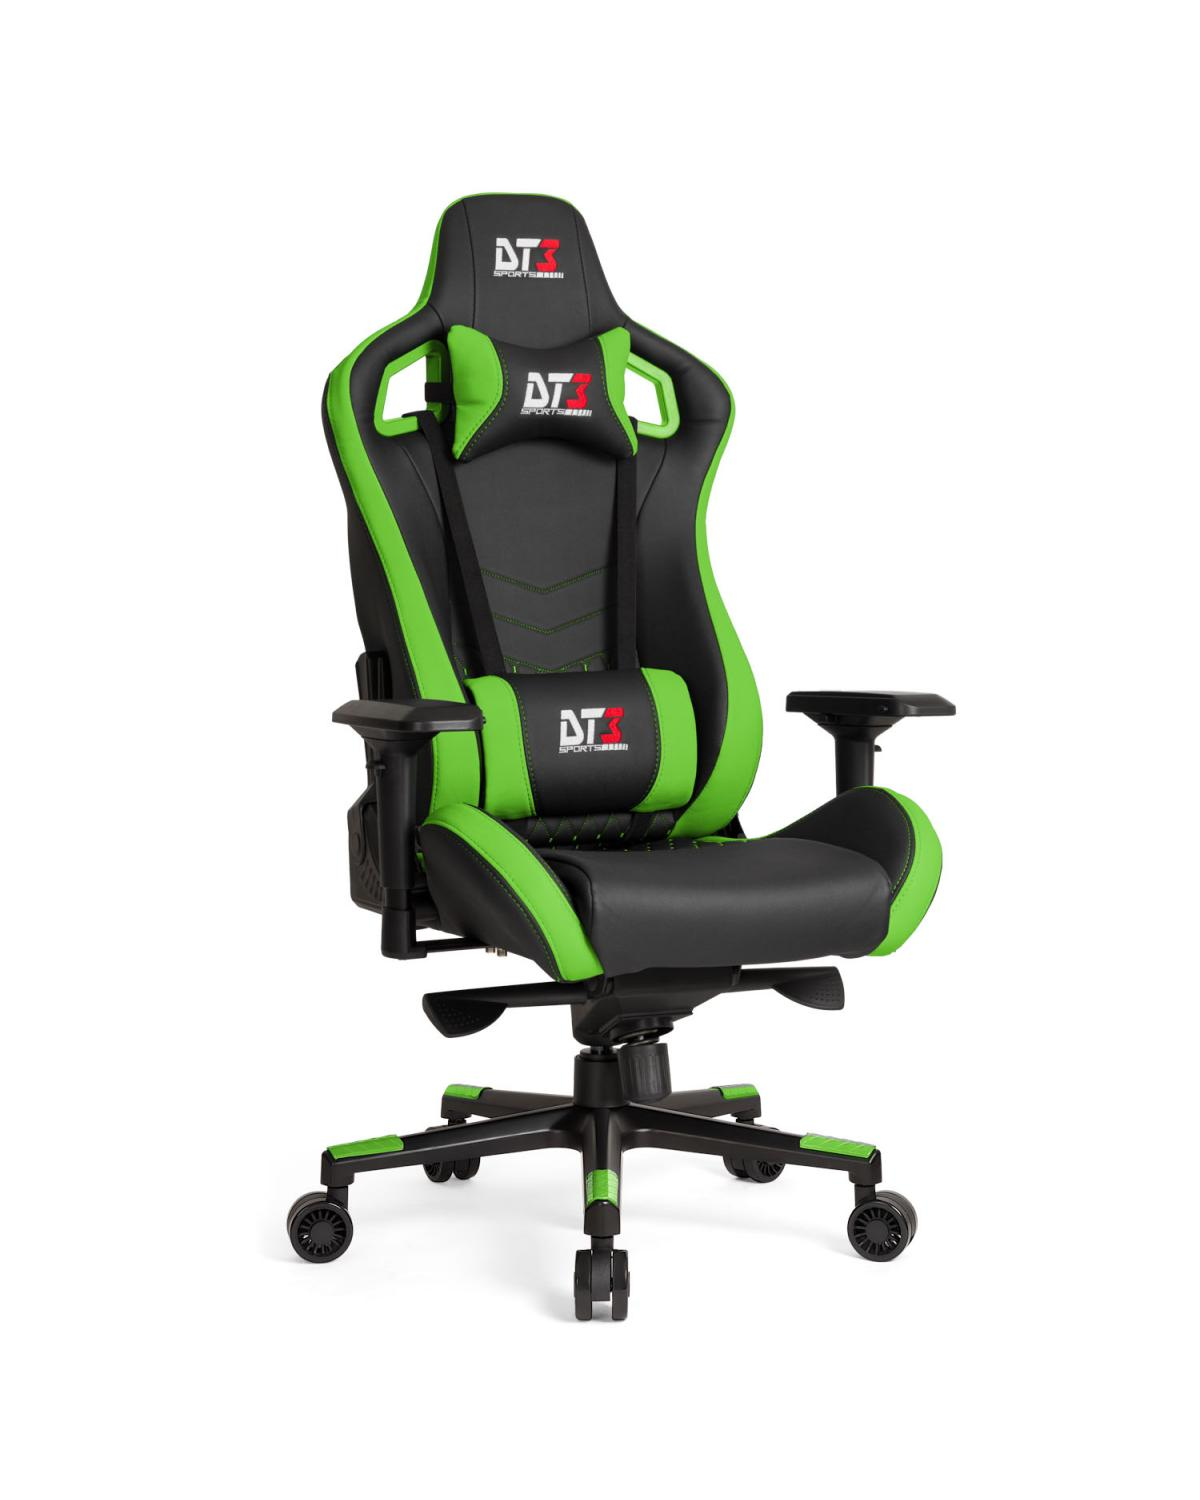 Cadeira Gamer DT3sports Ônix Diamond Green Elite Series